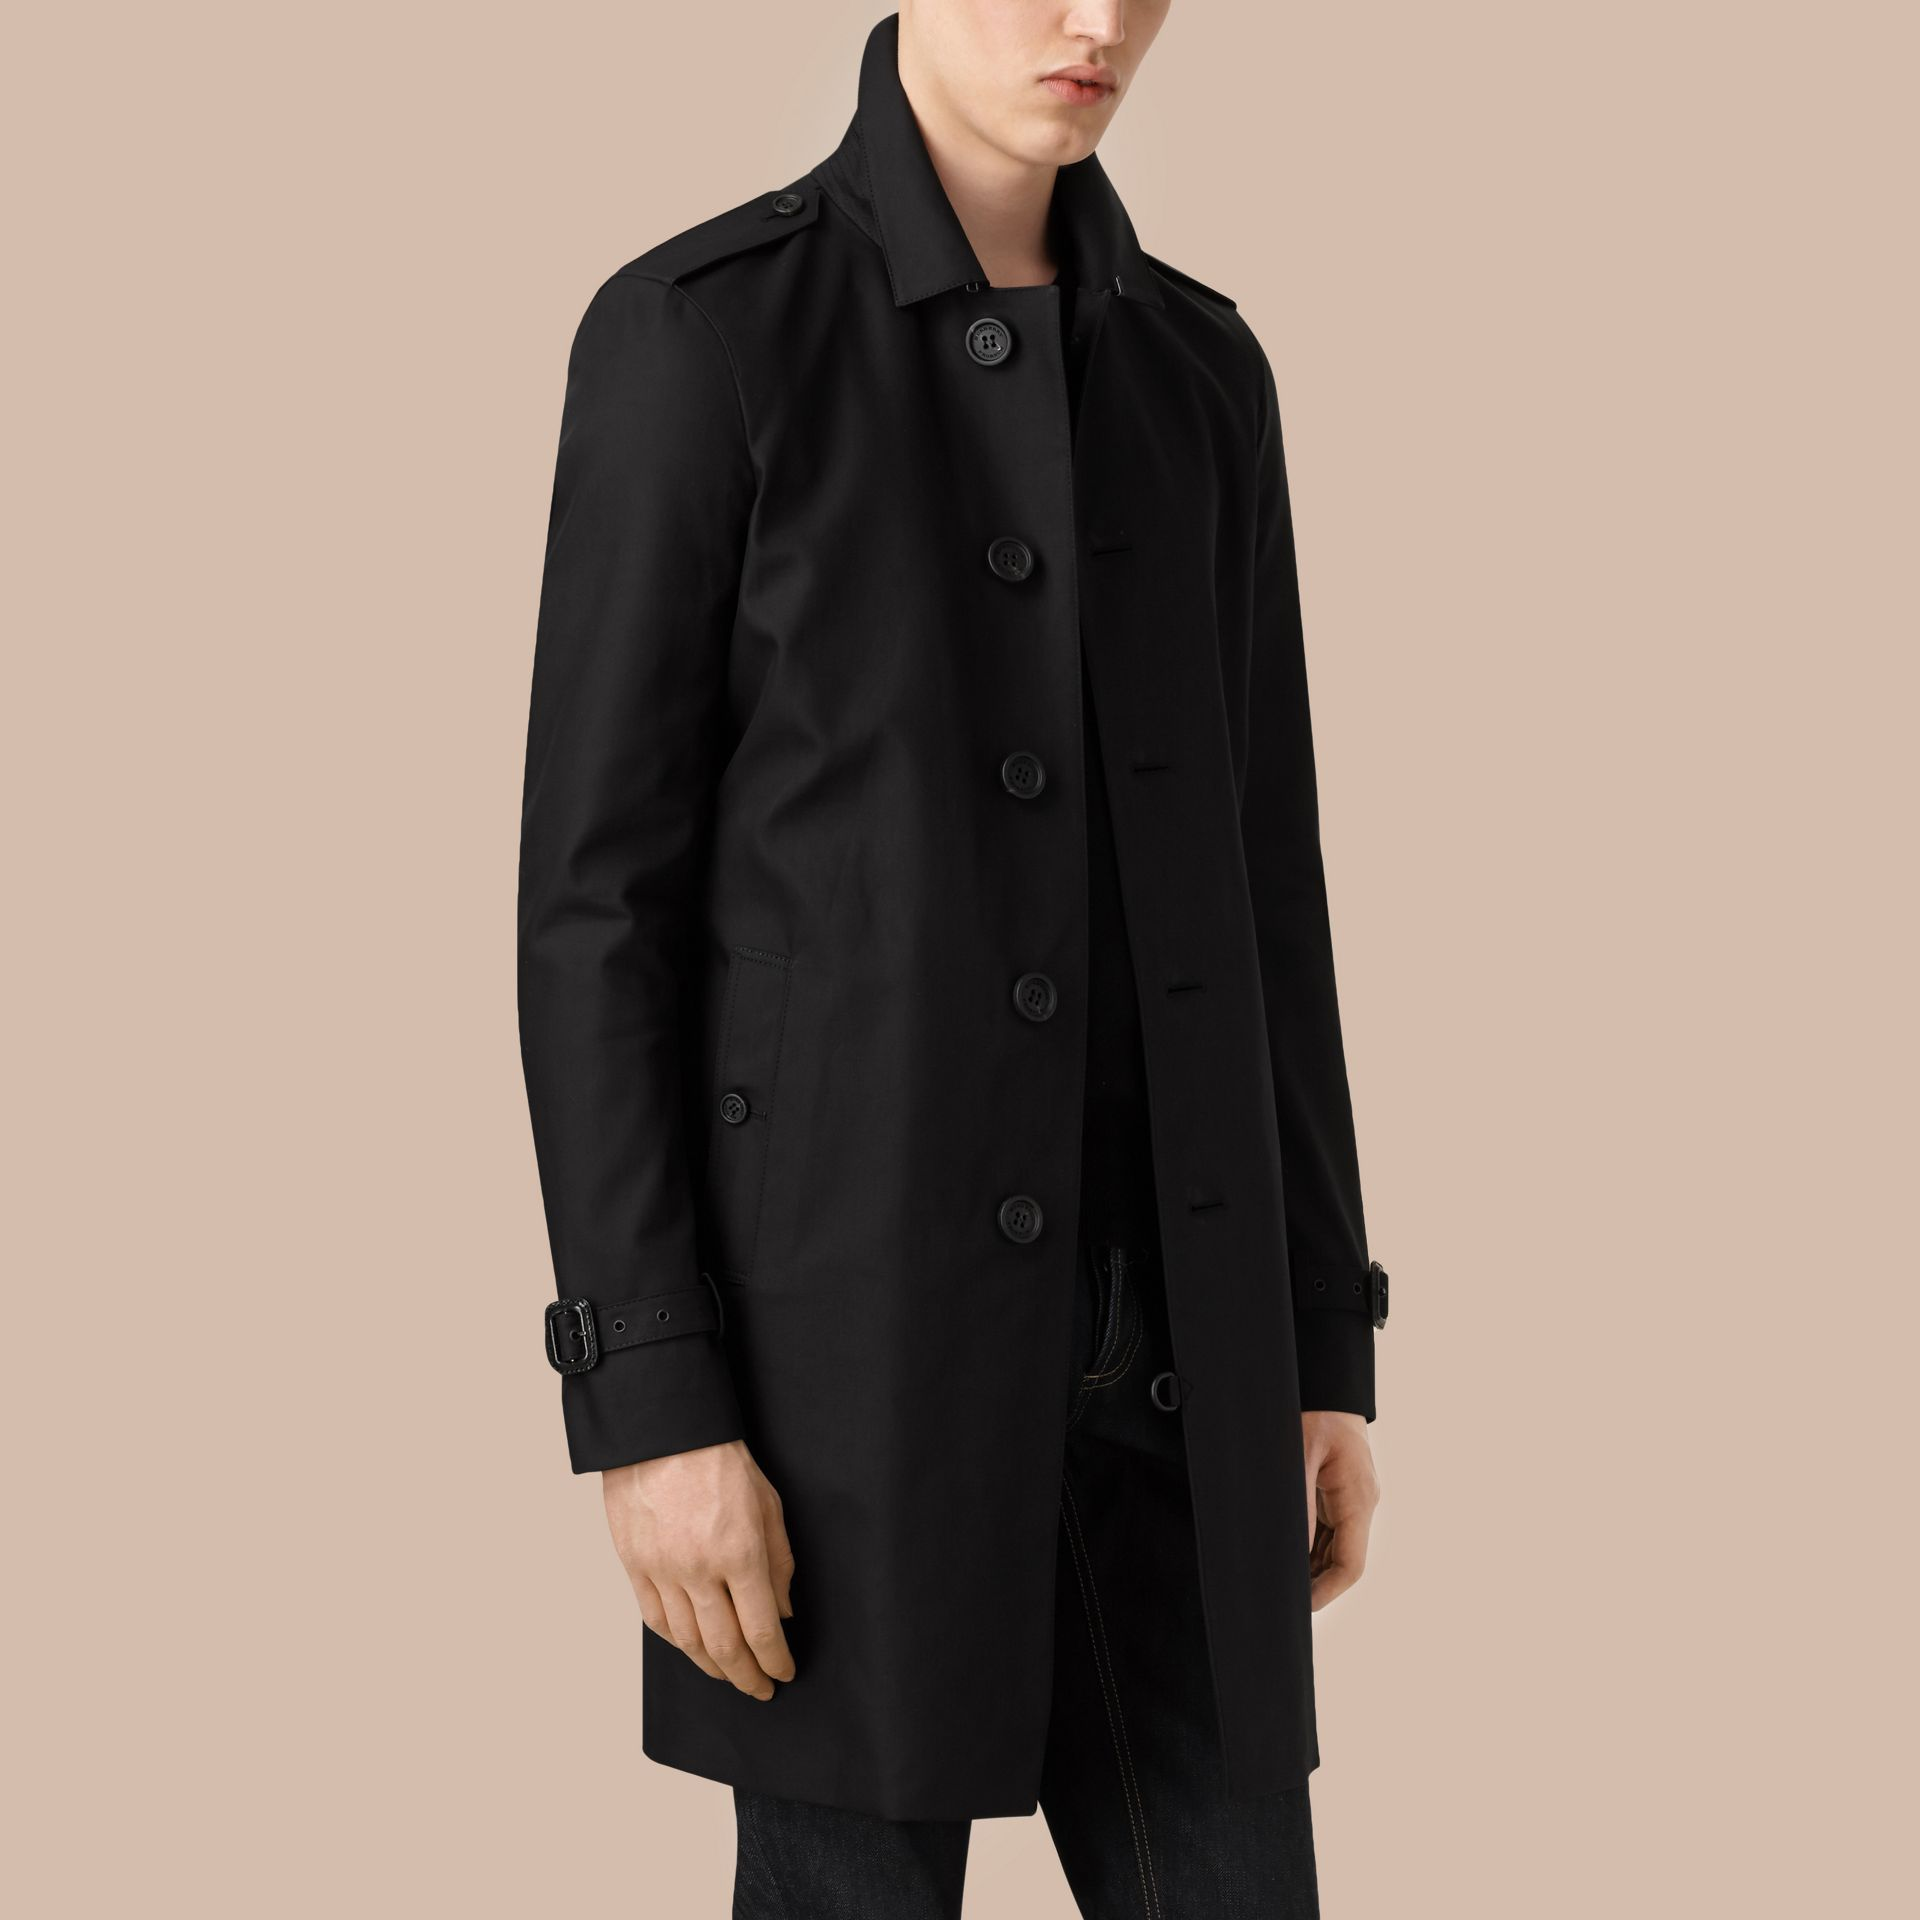 Noir Trench-coat en gabardine de coton - photo de la galerie 4